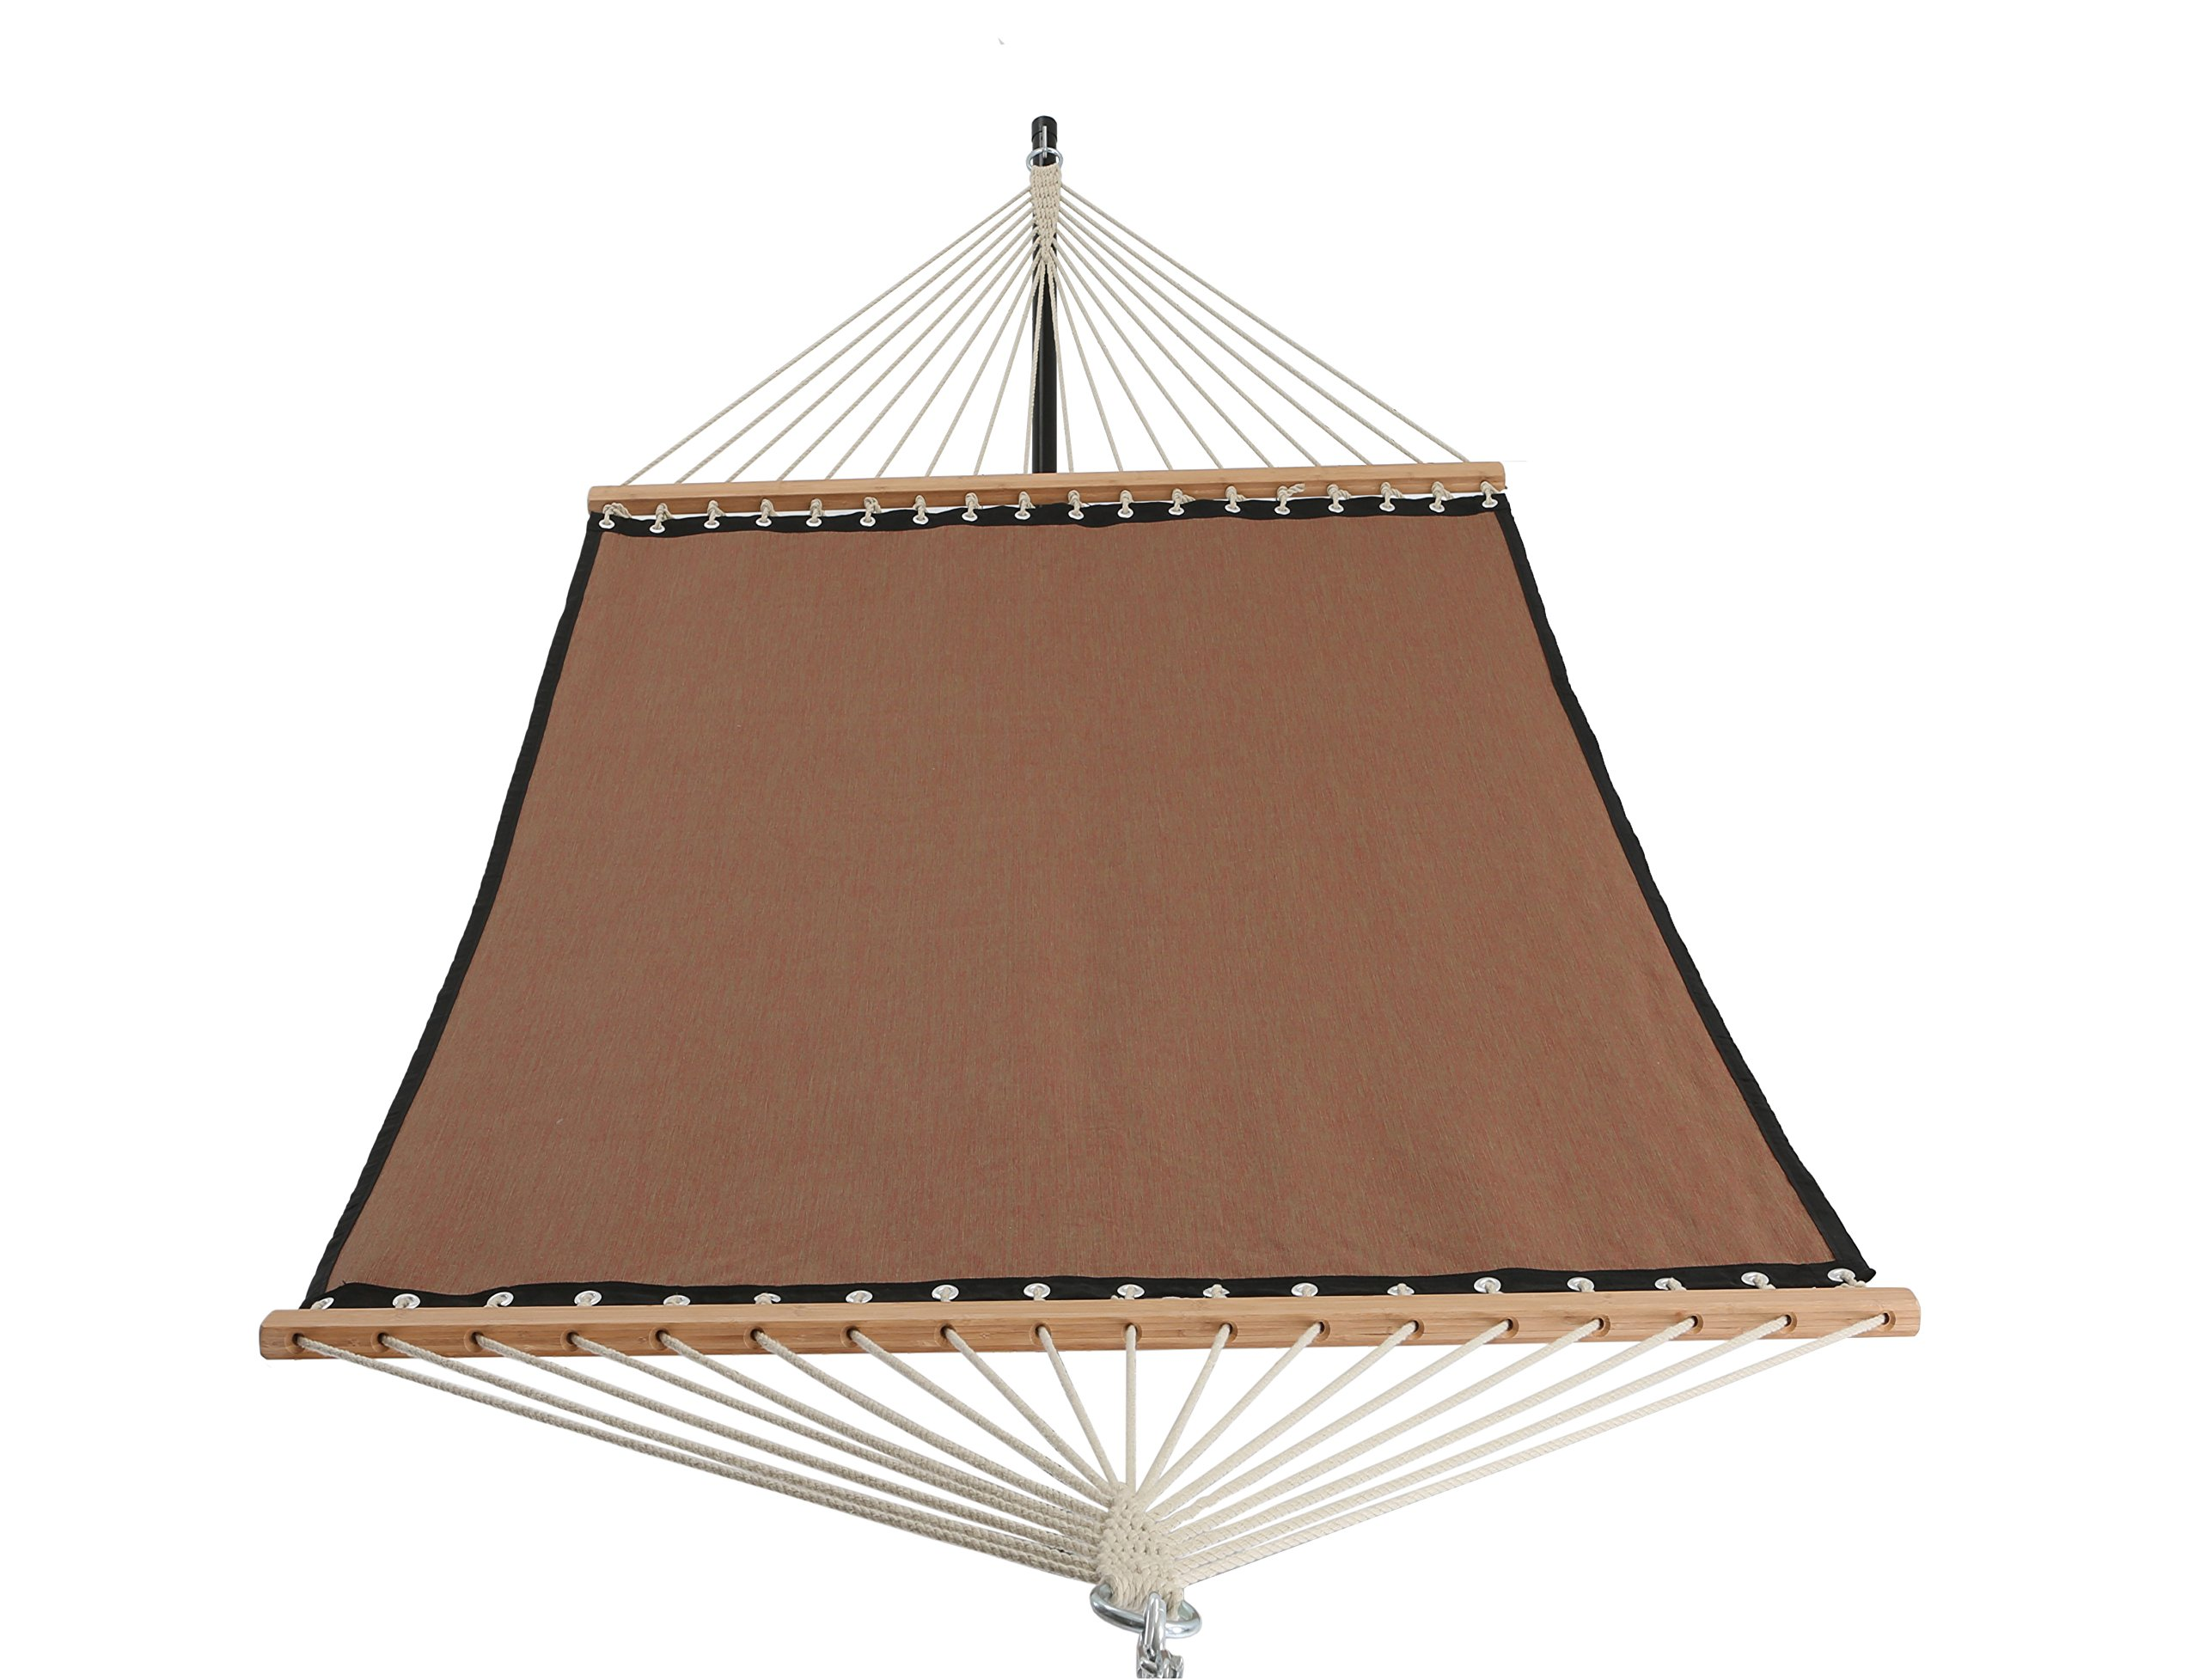 Patio Watcher 11 FT Quick Dry Hammock Bamboo Spreader Bars Outdoor Patio Yard Poolside Hammock with Chain Hanging Kits and Hooks, Textilene and Olefin Material, Waterproof and UV Resistance, Red - Dimensions: Patio Watcher rope hammock is large enough to hold 2 person.The total length (from loop to loop) is 11-feet while the bed resting area is 75 inches Long x 55 inches Wide. Two steel S-hooks and two 13-inch chains for adjust. This hammock is designed to safely support a maximum capacity of 400 pounds. Durable and Comfort: This Hammock is made of Textilene and Olefin material that is non-toxic fabric, soft, breathable, comfortable, weatherproof and oil proof. The fabric is vinyl coated for easy clean up and dry quickly. 55 inches durable bamboo spreader bar with powder coated in an oil rubbed finish protects from rot, mold or mildew, making it more stable and maximizing style. Easy to Use: Comes with a high quality rope hammock, sturdy suspension rings, two steel S-hooks and two 13-inch chains for easy setup. Just hang it between two trees with straps or on a hammock stand (NOT INCLUDED). And this patio hammock is very easy to take it off and roll it up, store it. - patio-furniture, patio, hammocks - 817Omxvo5pL -